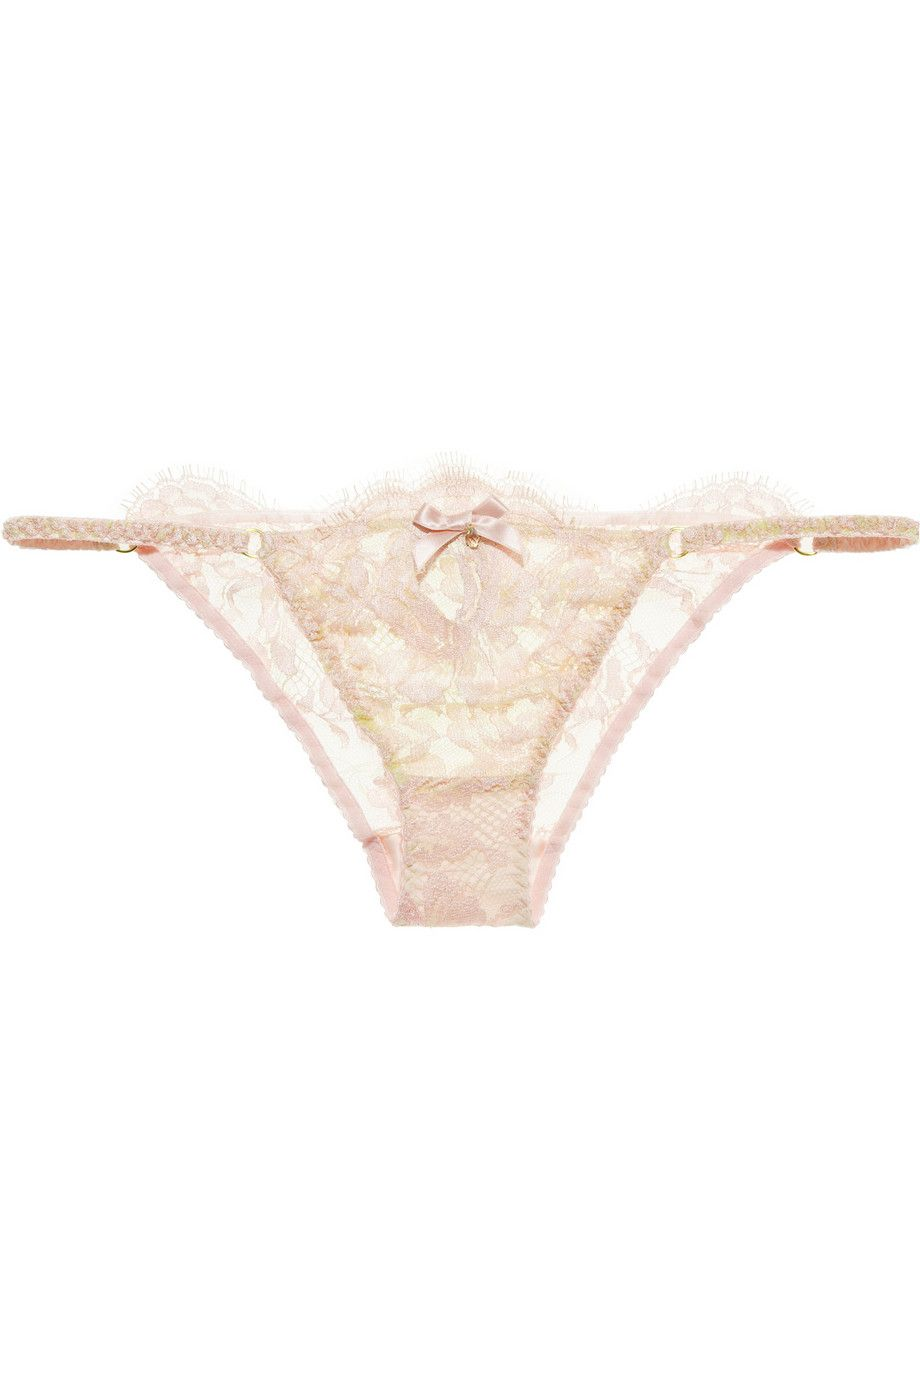 Agent Provocateur - Saadia lace briefs. Frilly KnickersAgent Provocateur BriefsSexy LingerieBoudoirUnderwearSwimwearBraFur 88934b7fa